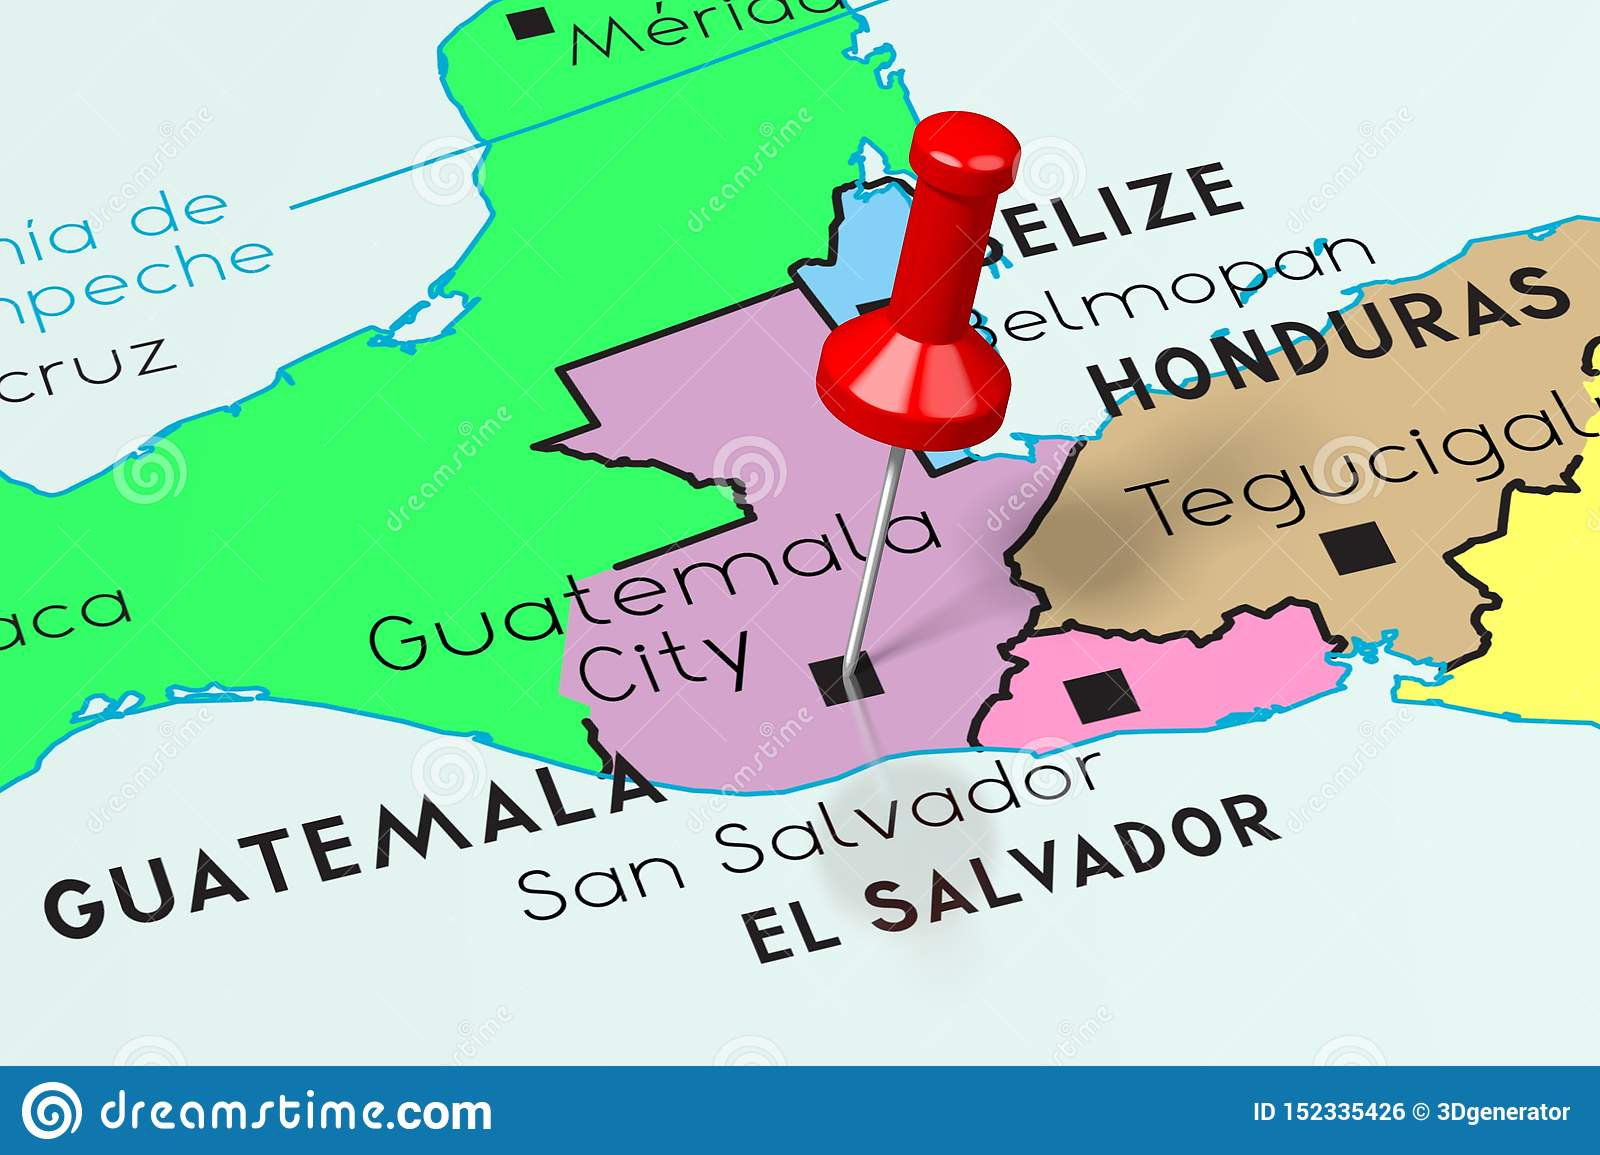 Picture of: Guatemala Guatemala City Capital City Pinned On Political Map Stock Illustration Illustration Of Country Geographical 152335426